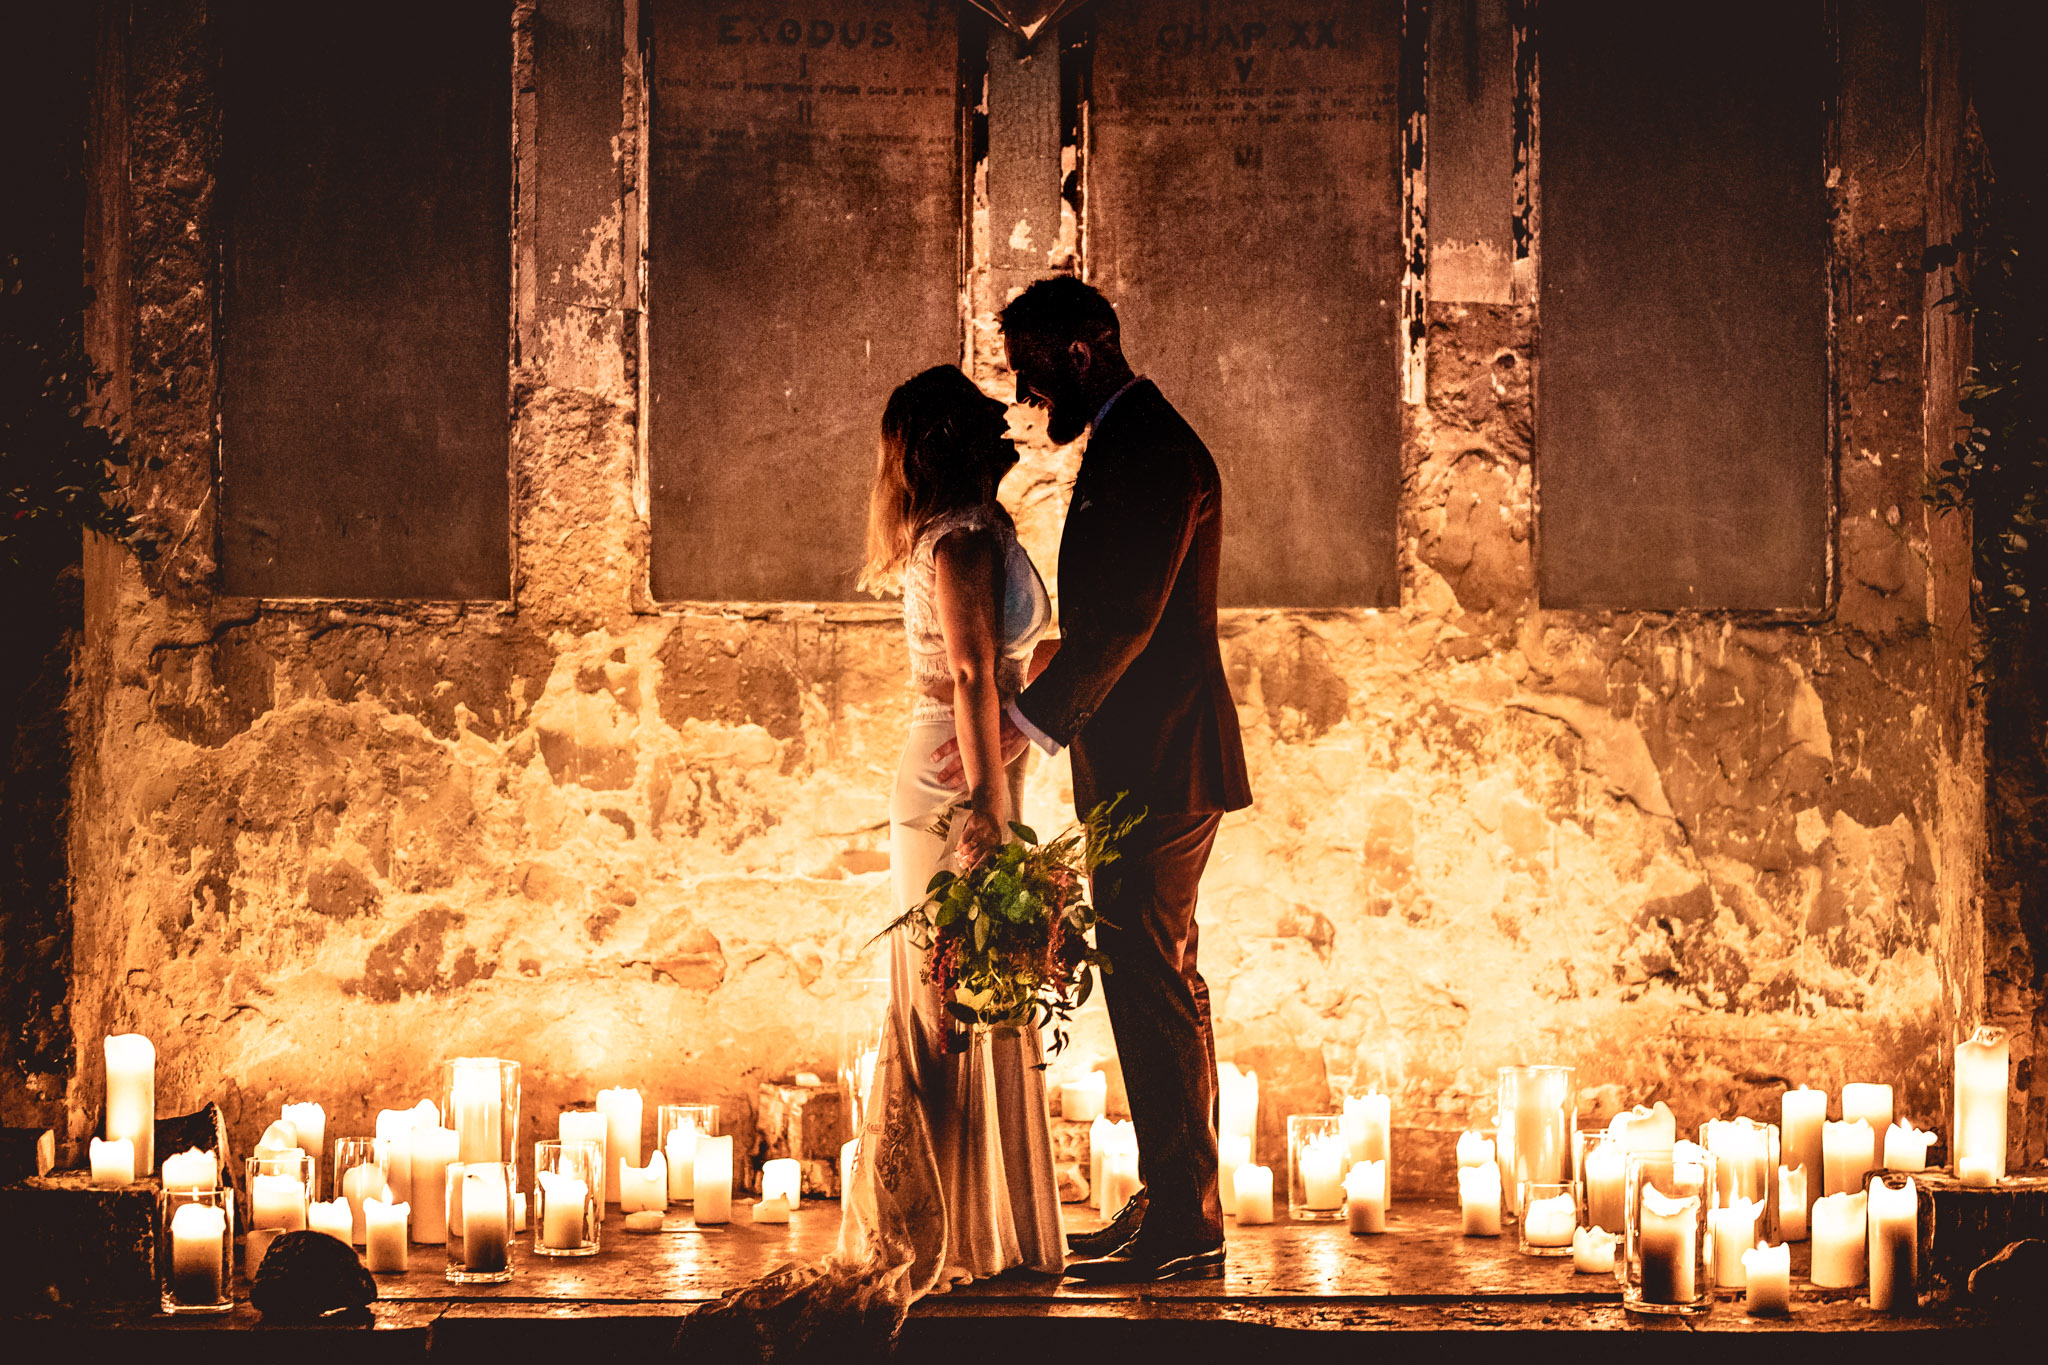 Bride and groom silhouette against candlelight - photo by Andrew Billington Photography